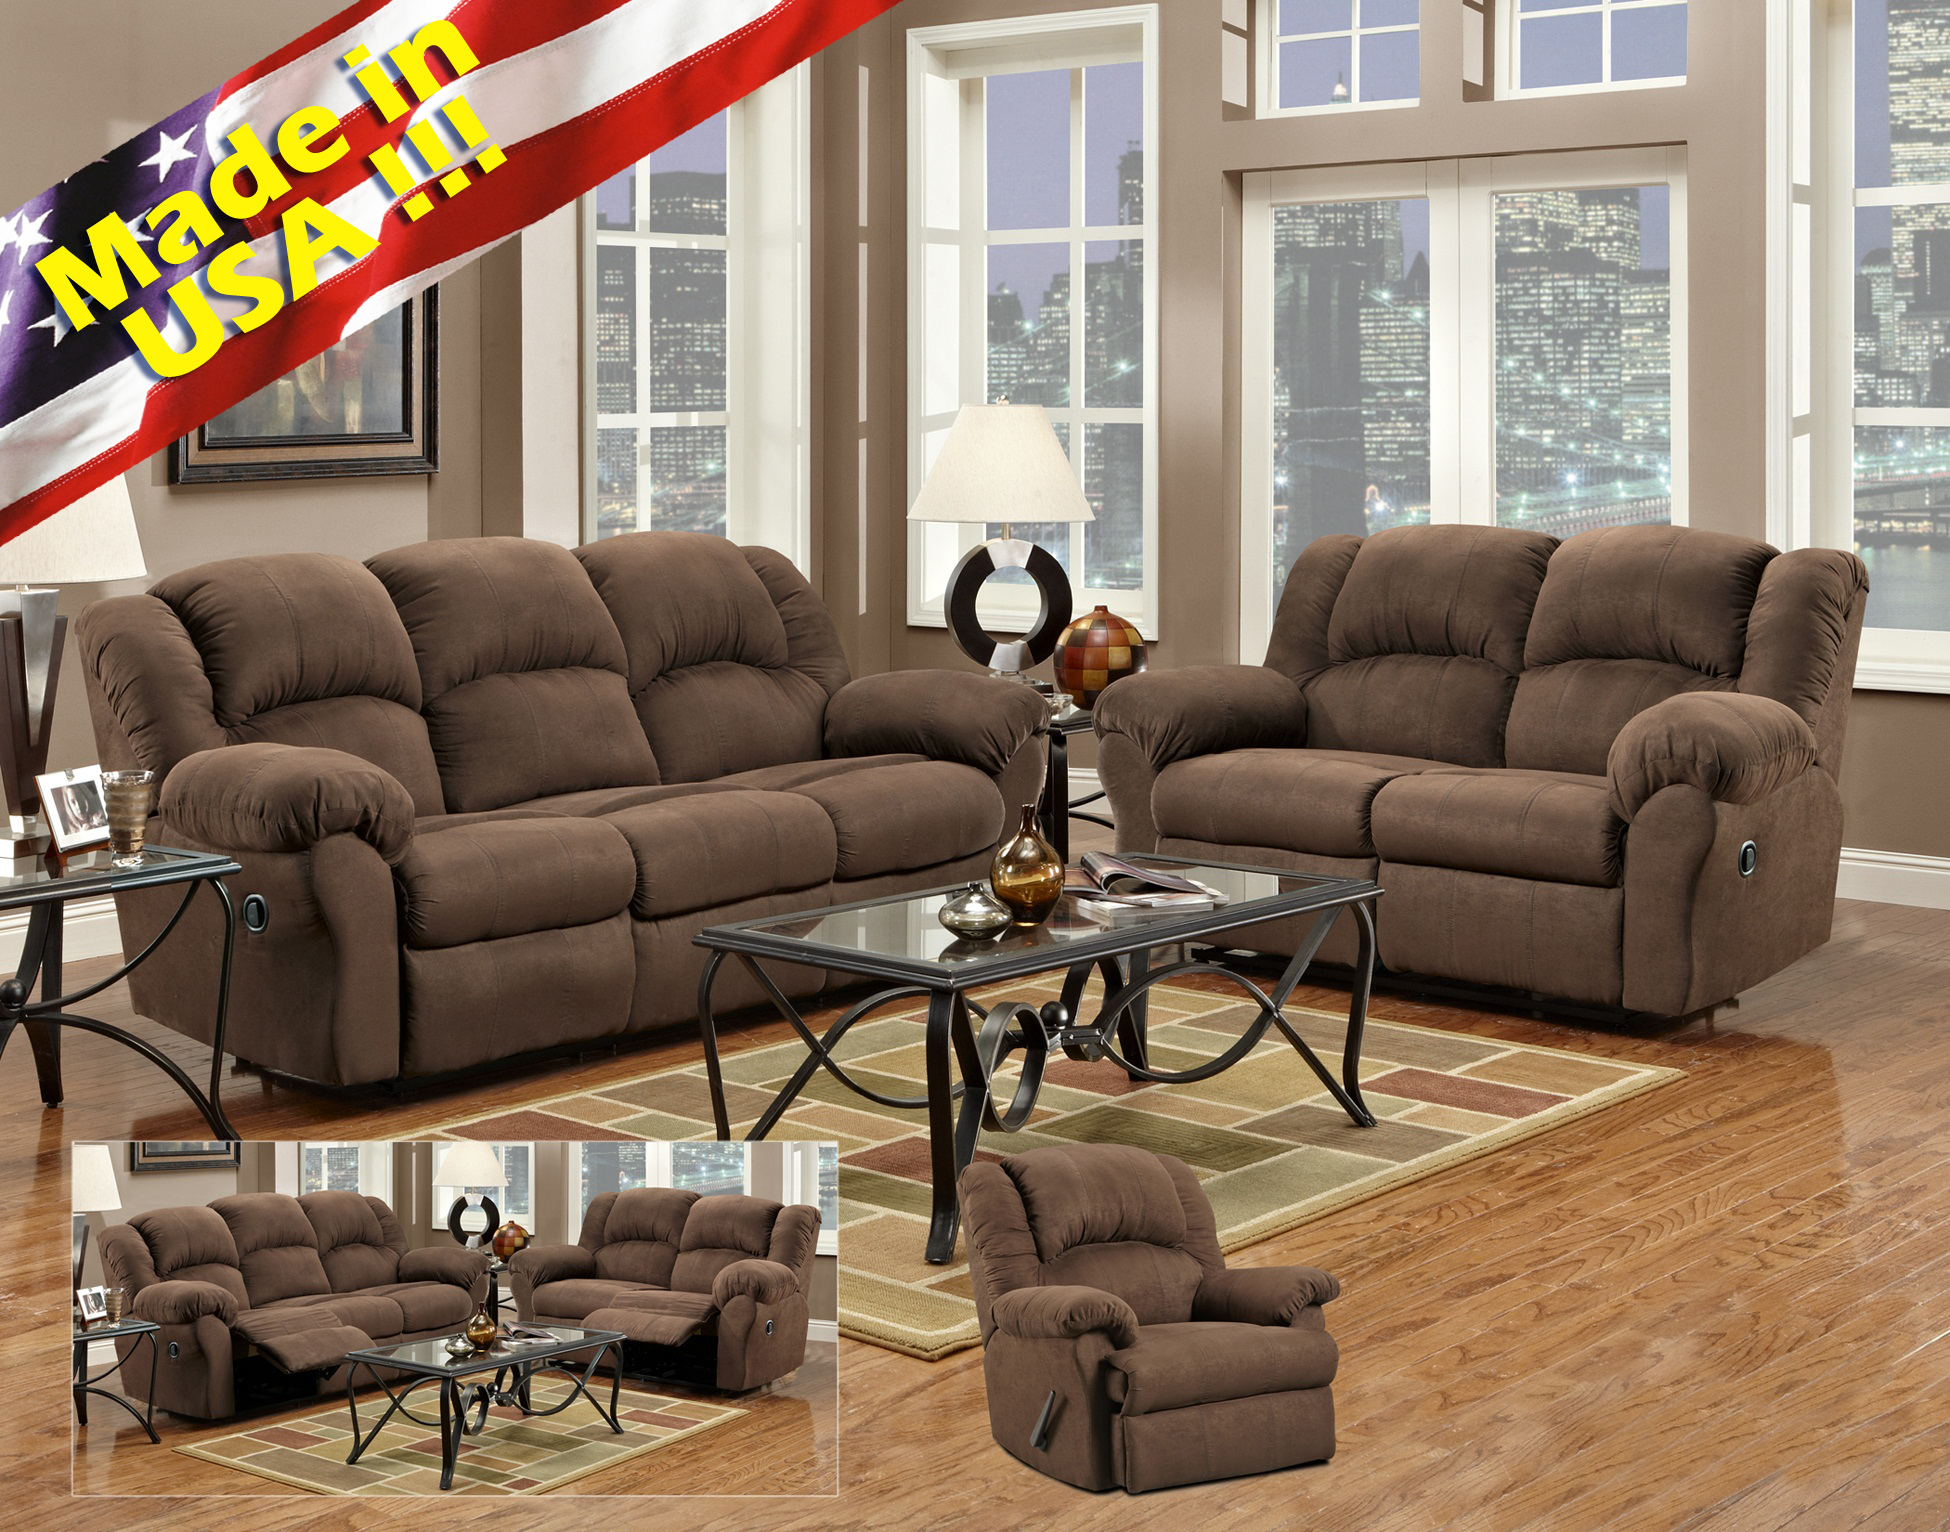 Brown microfiber living room set - Microfiber living room furniture sets ...